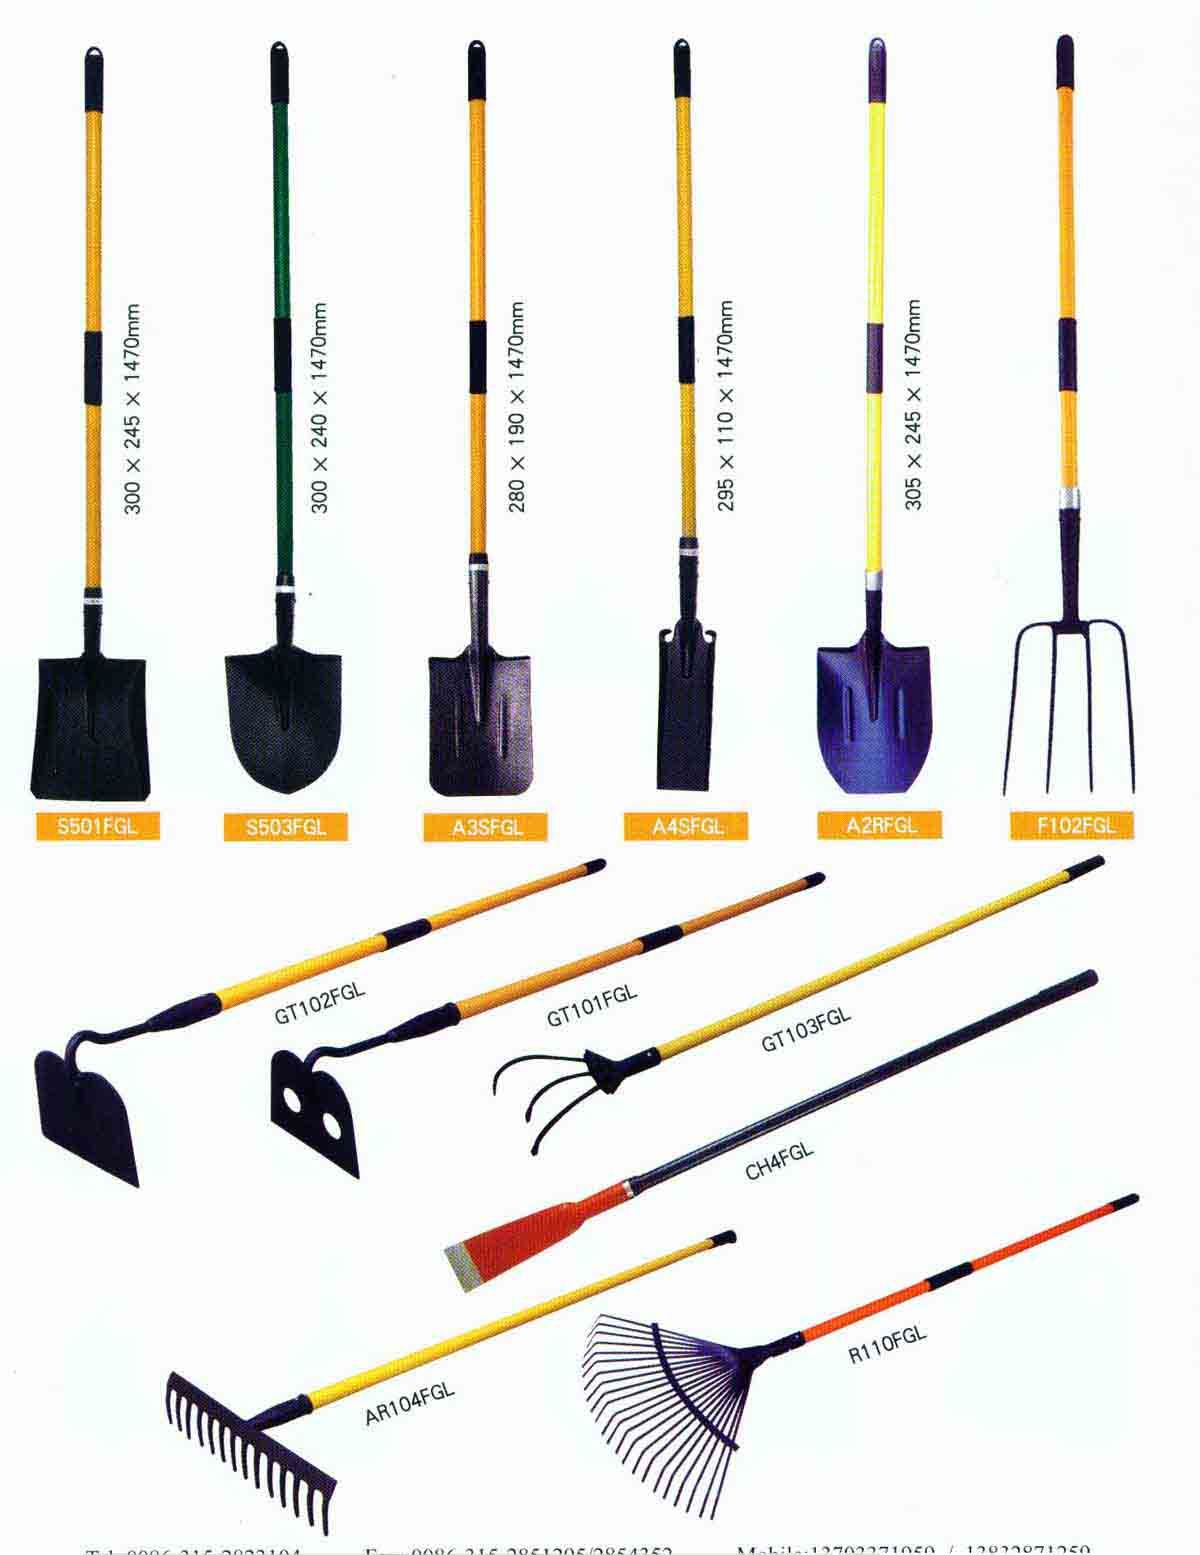 China shovel with fiberglass handle s501fgl s503fgl for Gardening tools list and their uses